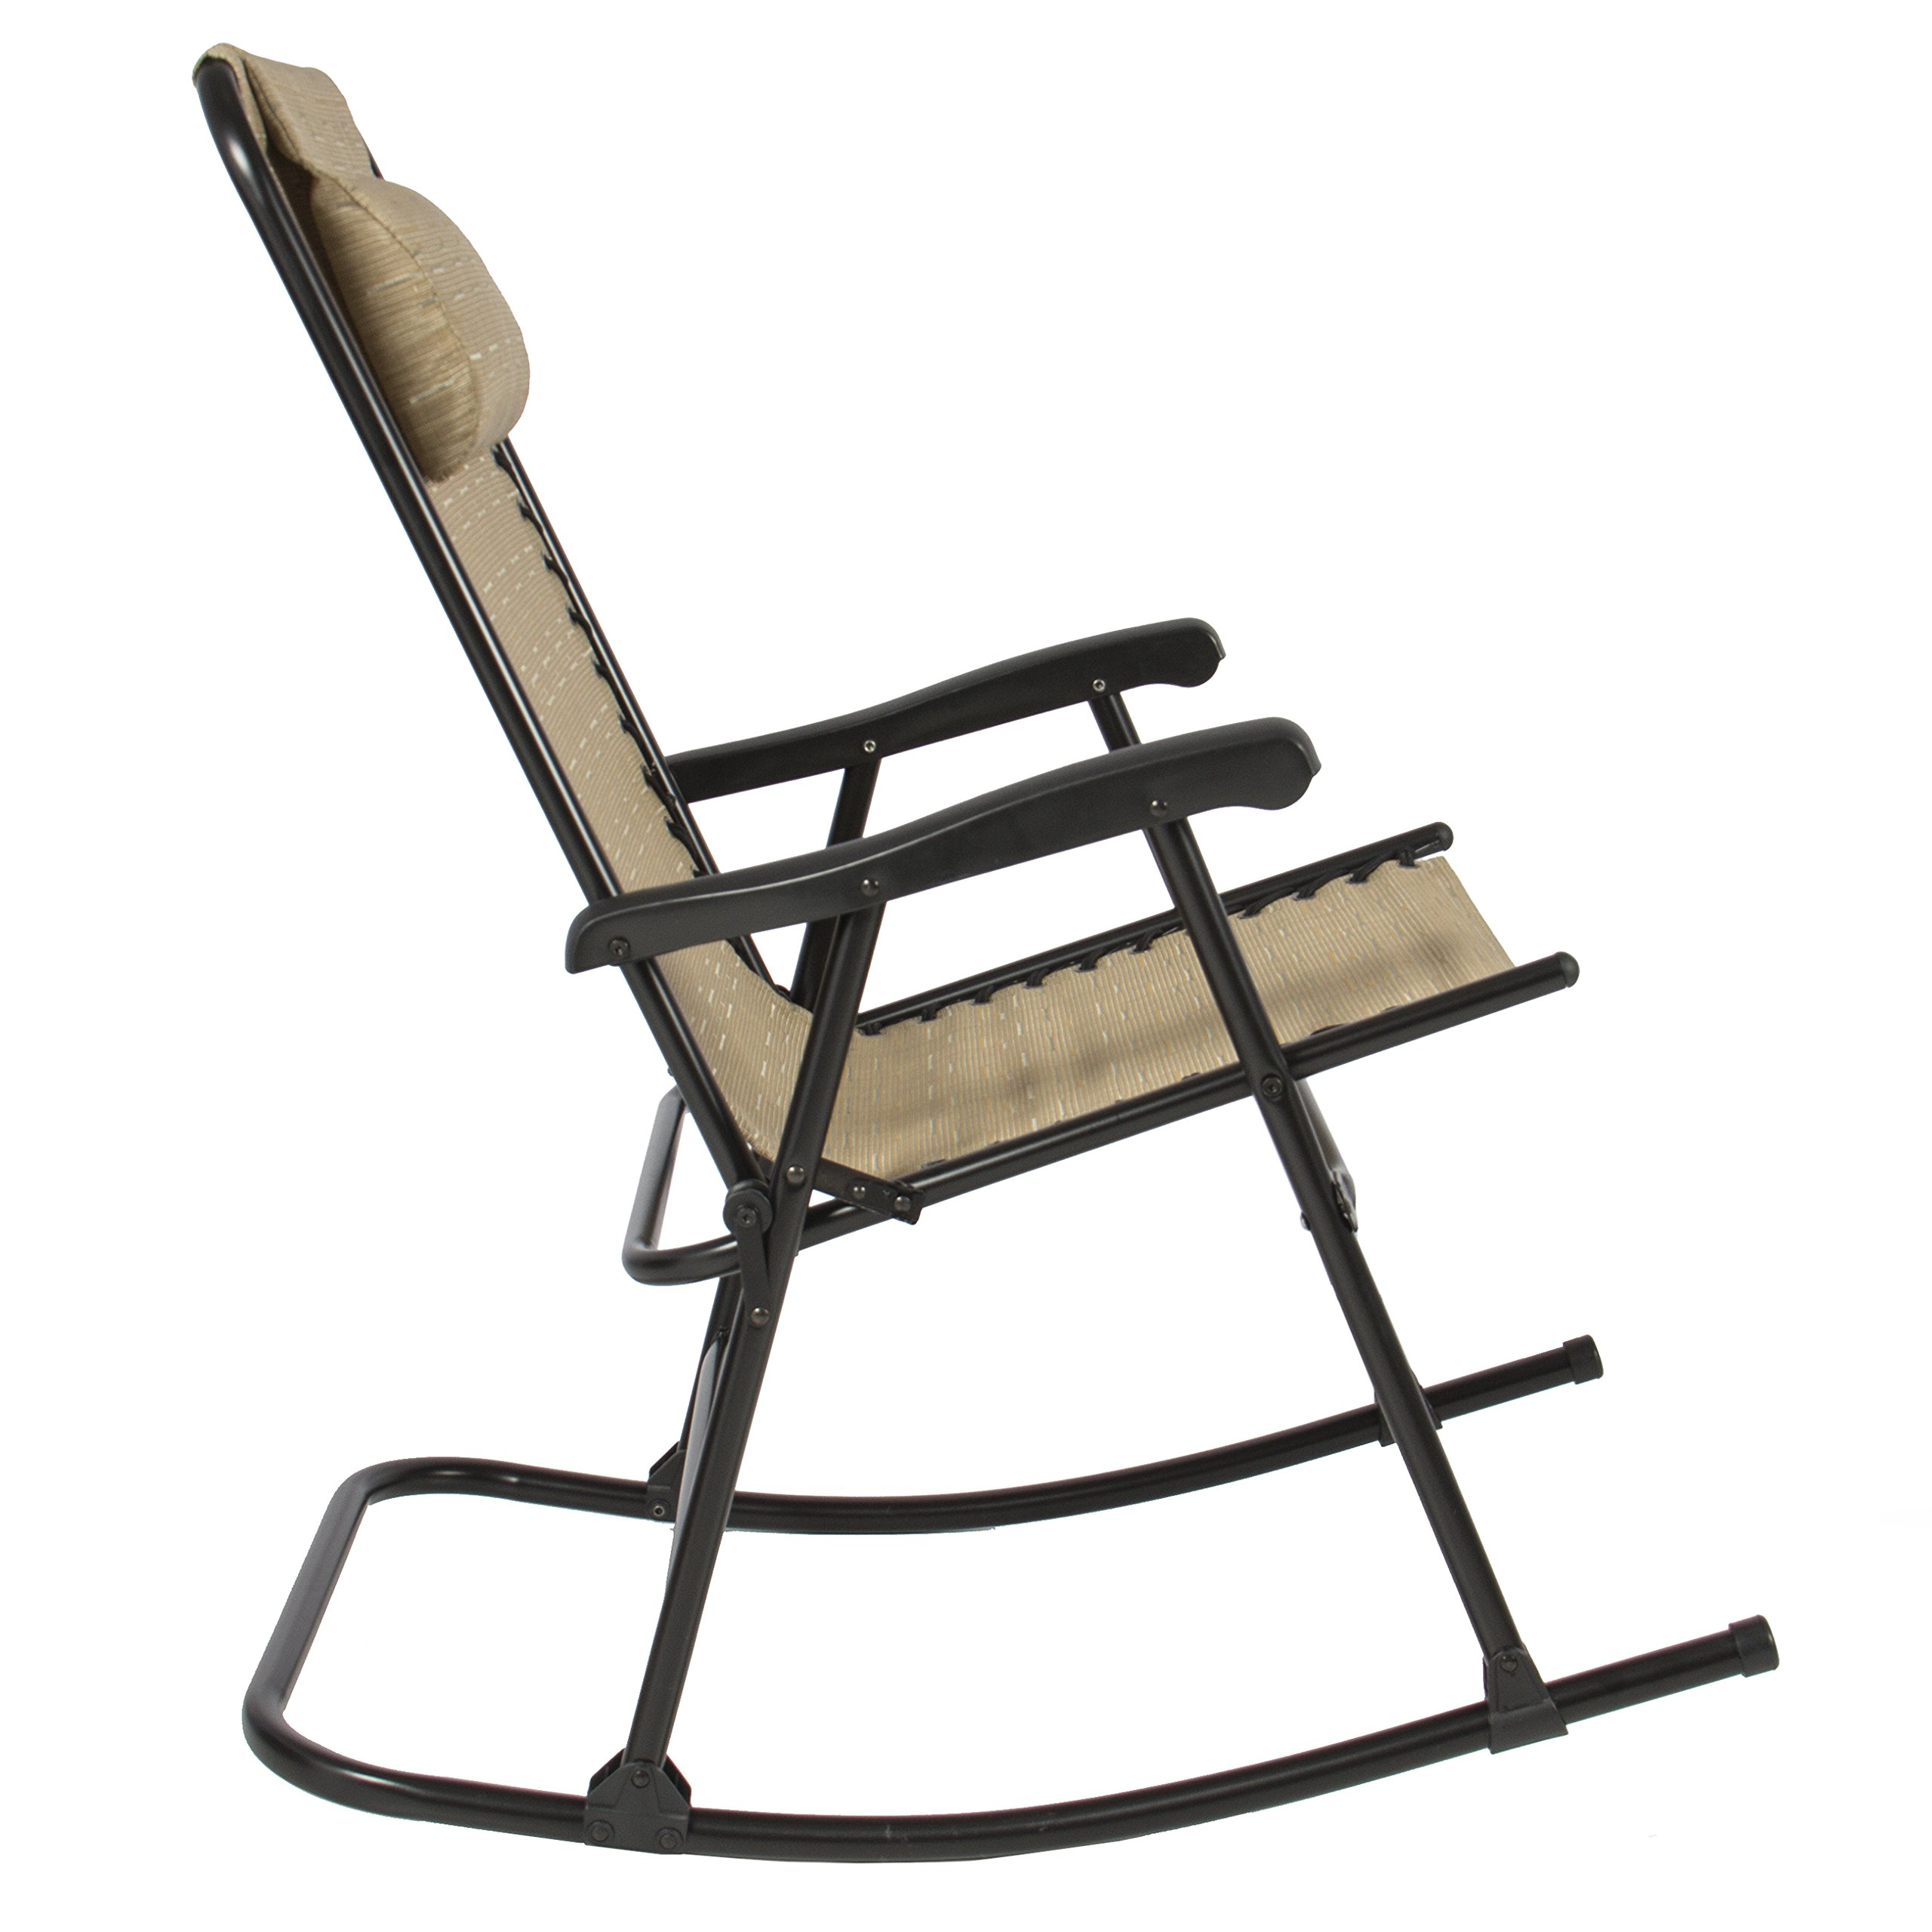 folding outdoor rocking chairs chair accessories for weddings best choice products foldable rocker